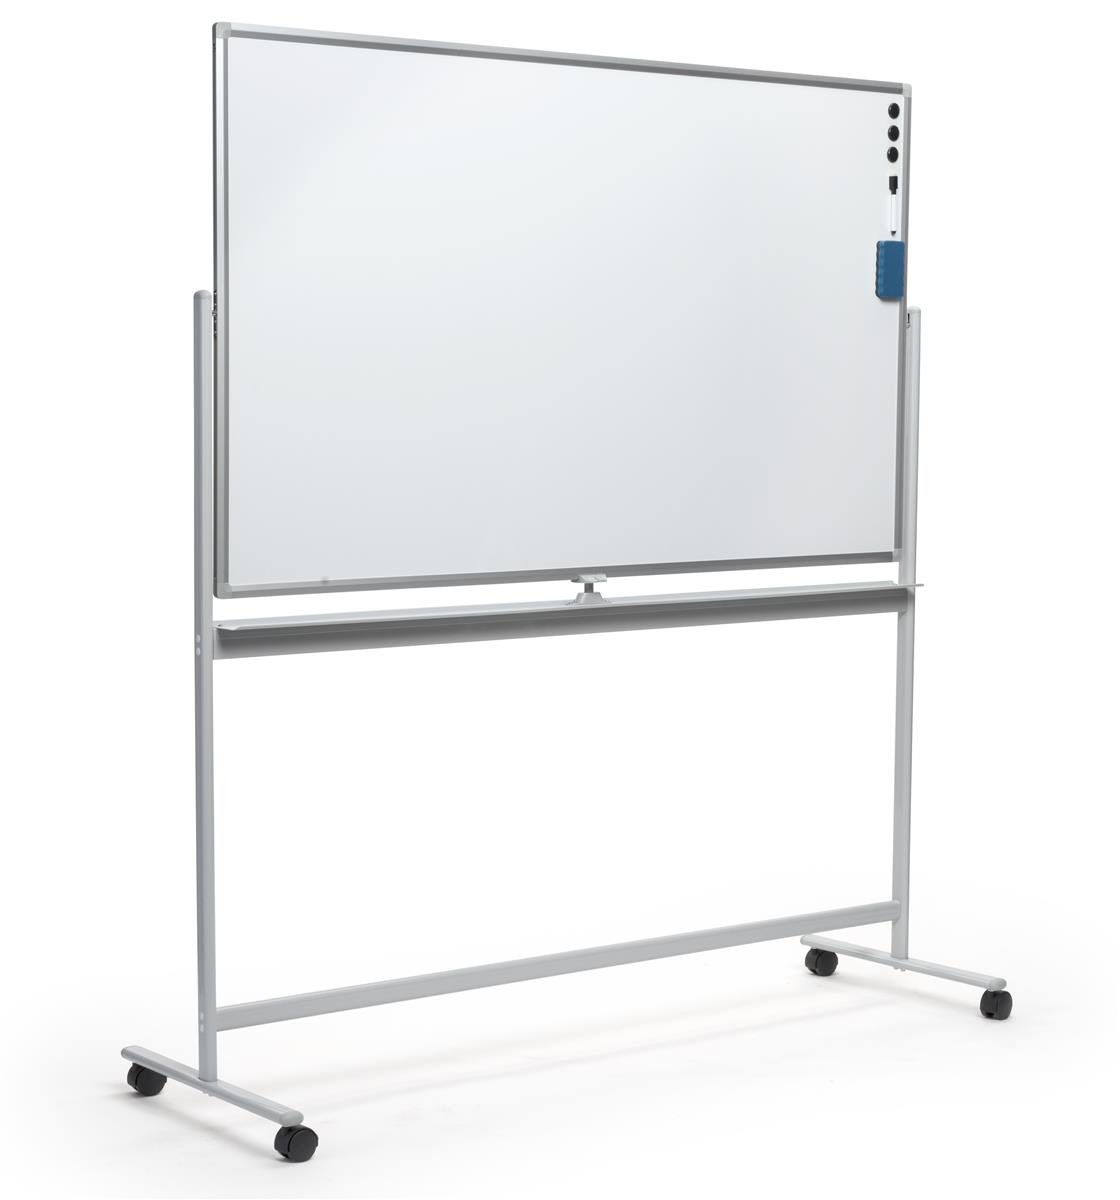 Displays2go 60 x 36 Rolling Whiteboards, Double Sided, Magnetic Surface – Silver (WHBMOB6040)